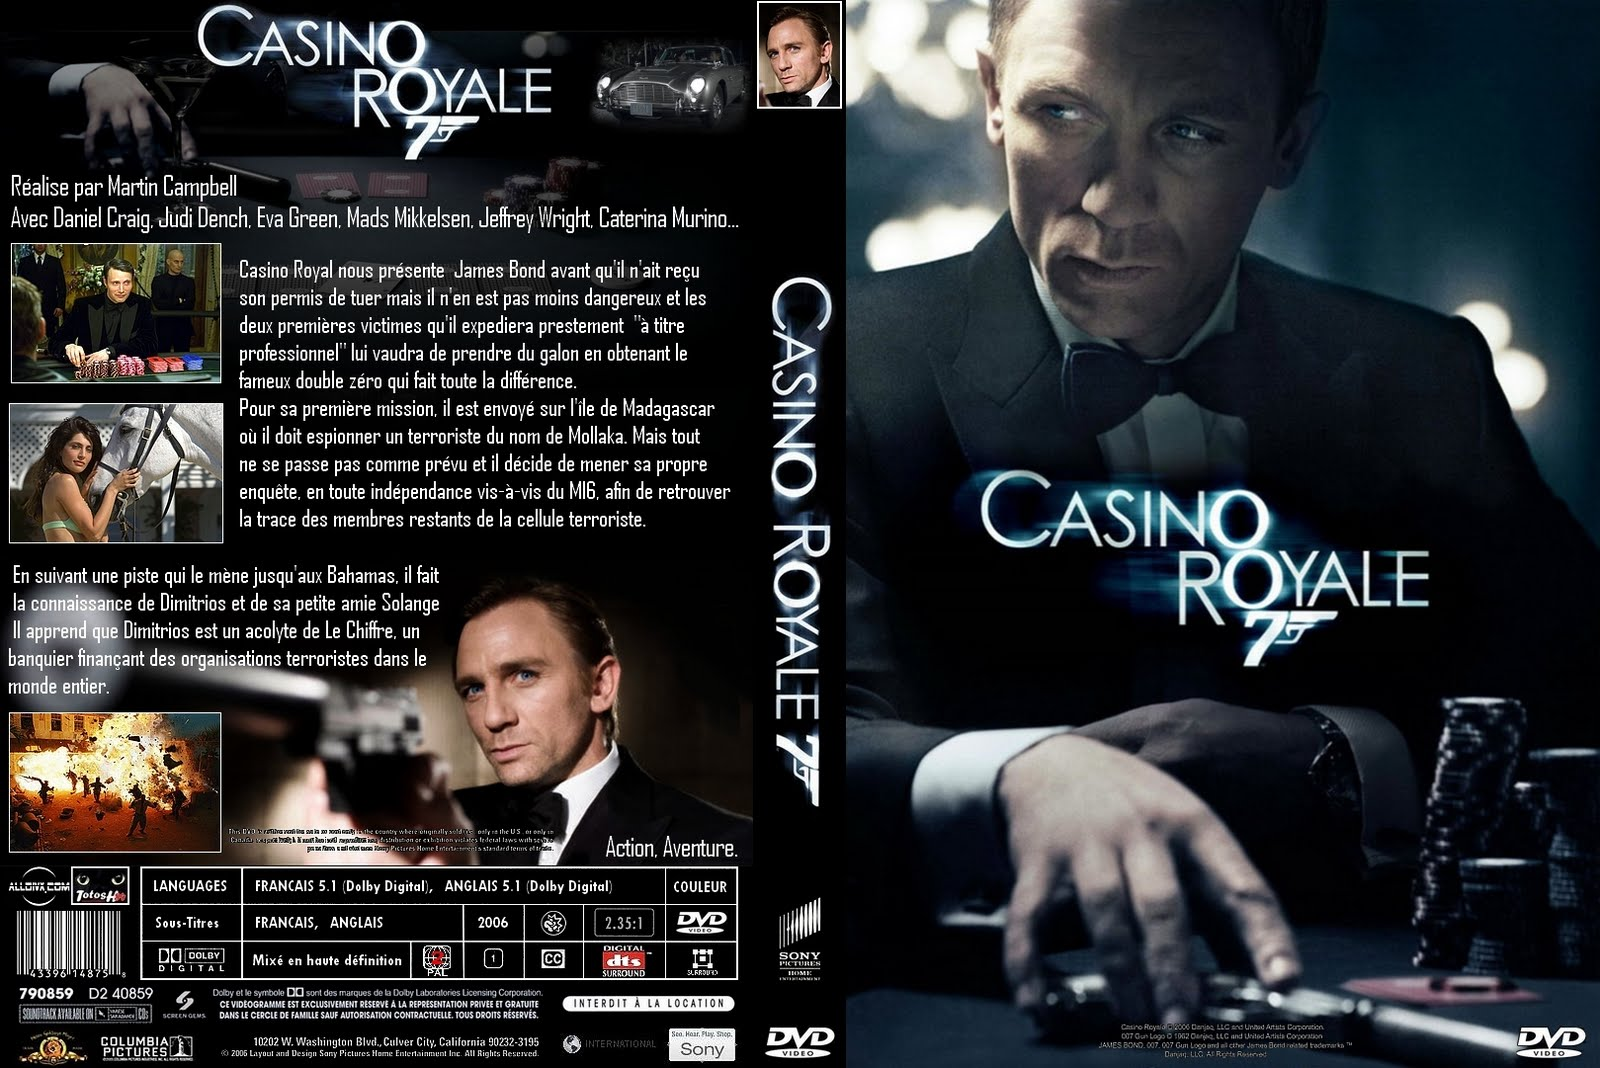 casino royale 2006 full movie online free book of